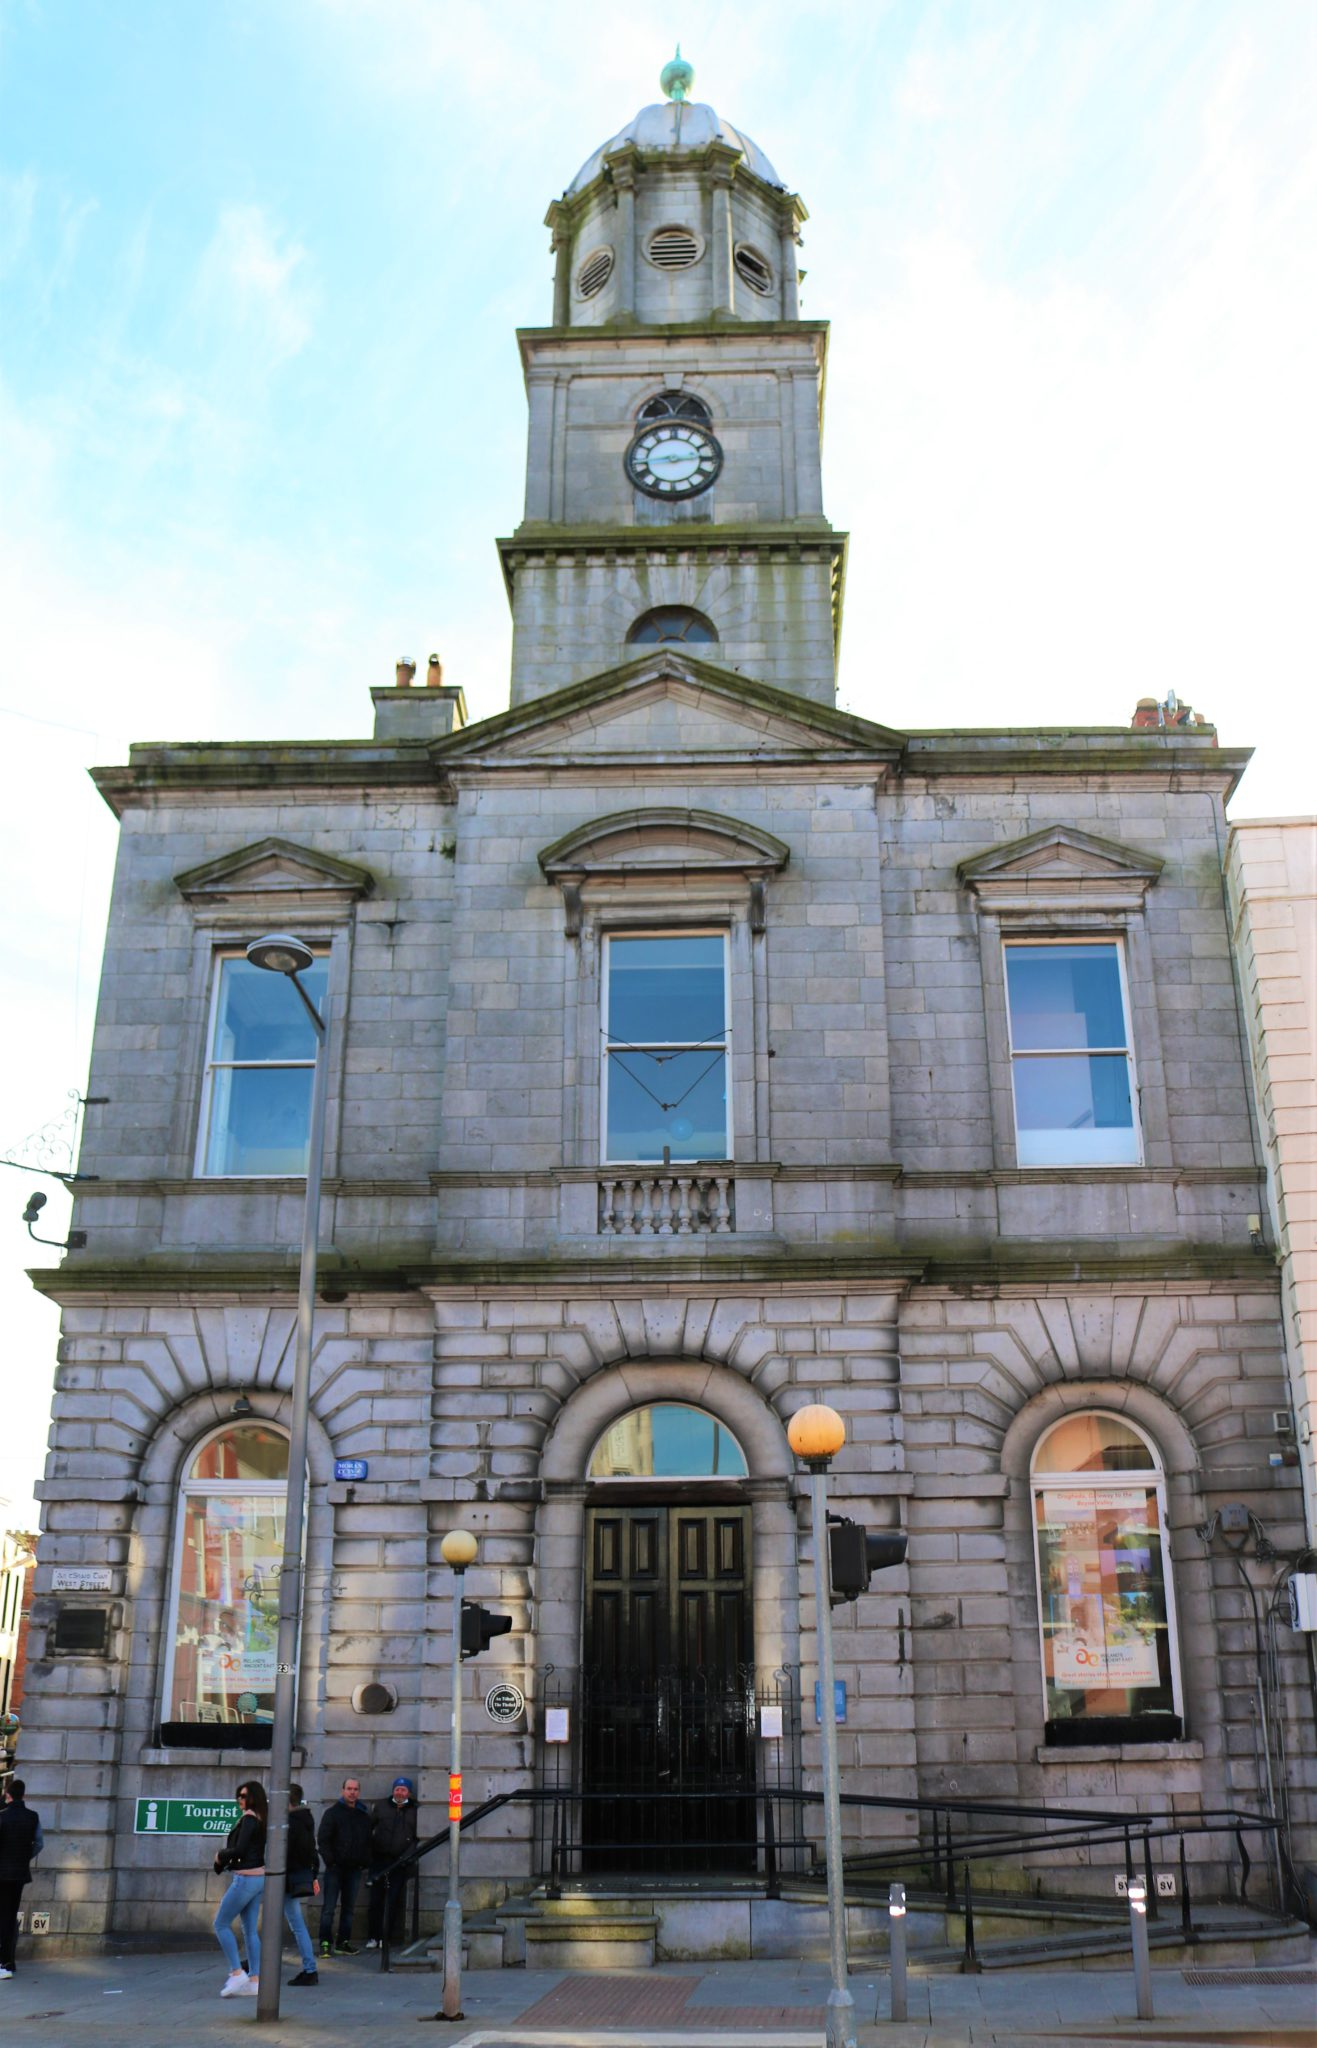 'A large, handsome town': Drogheda's architecture in the long 18th century